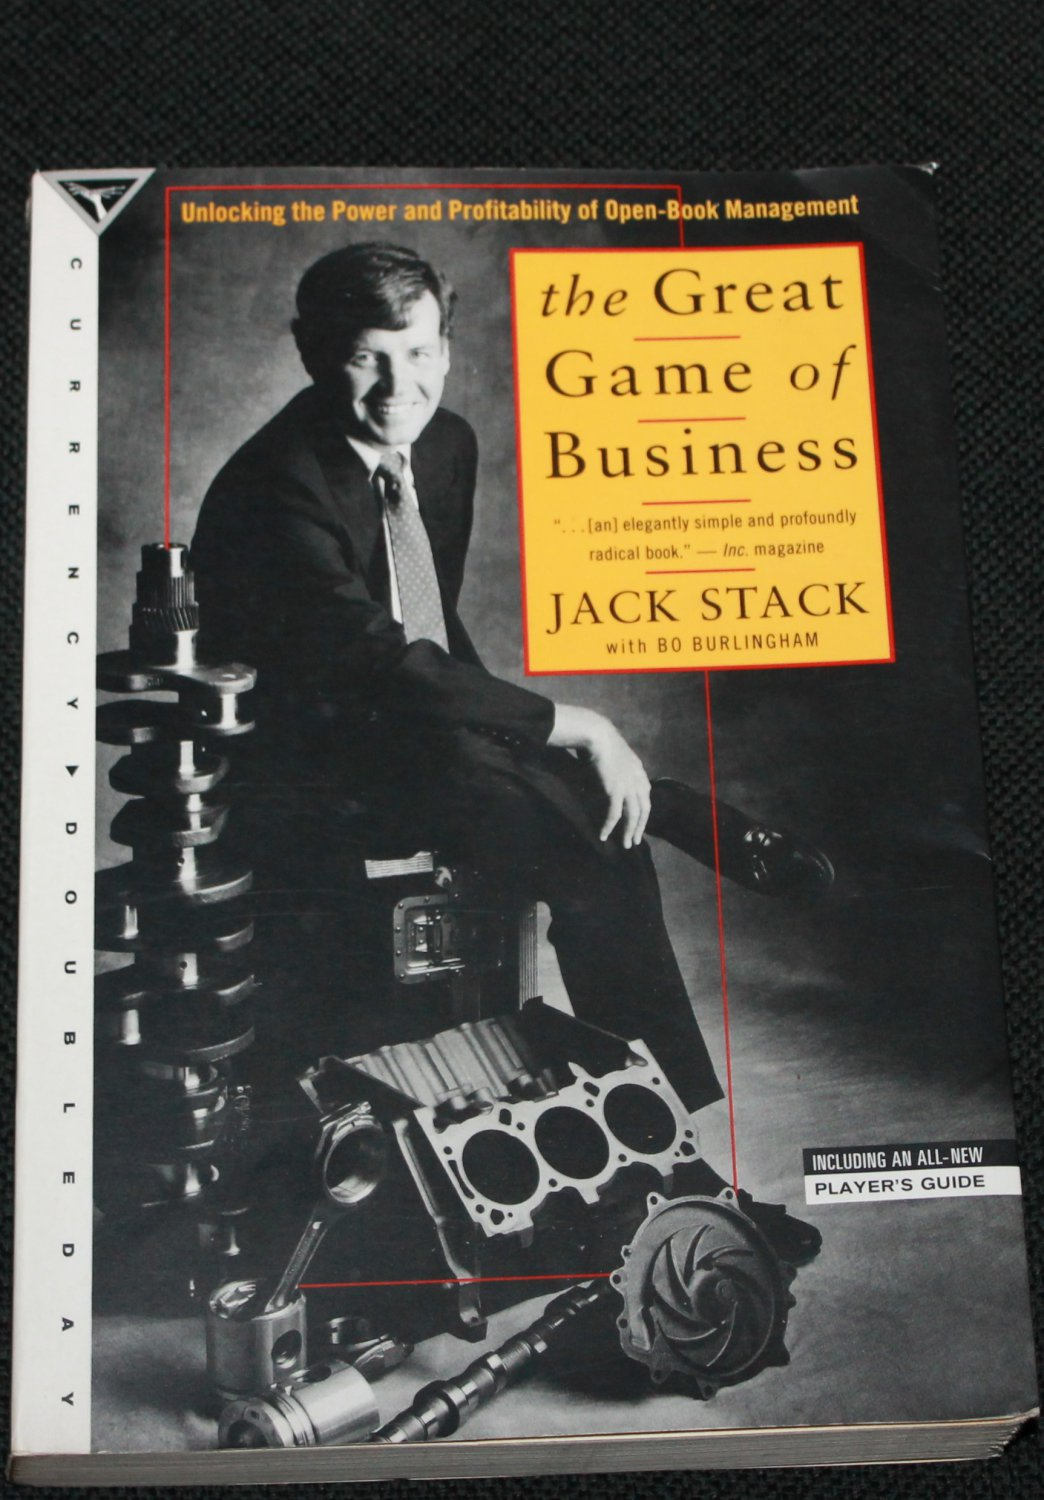 The Great Game of Business Jack Stack